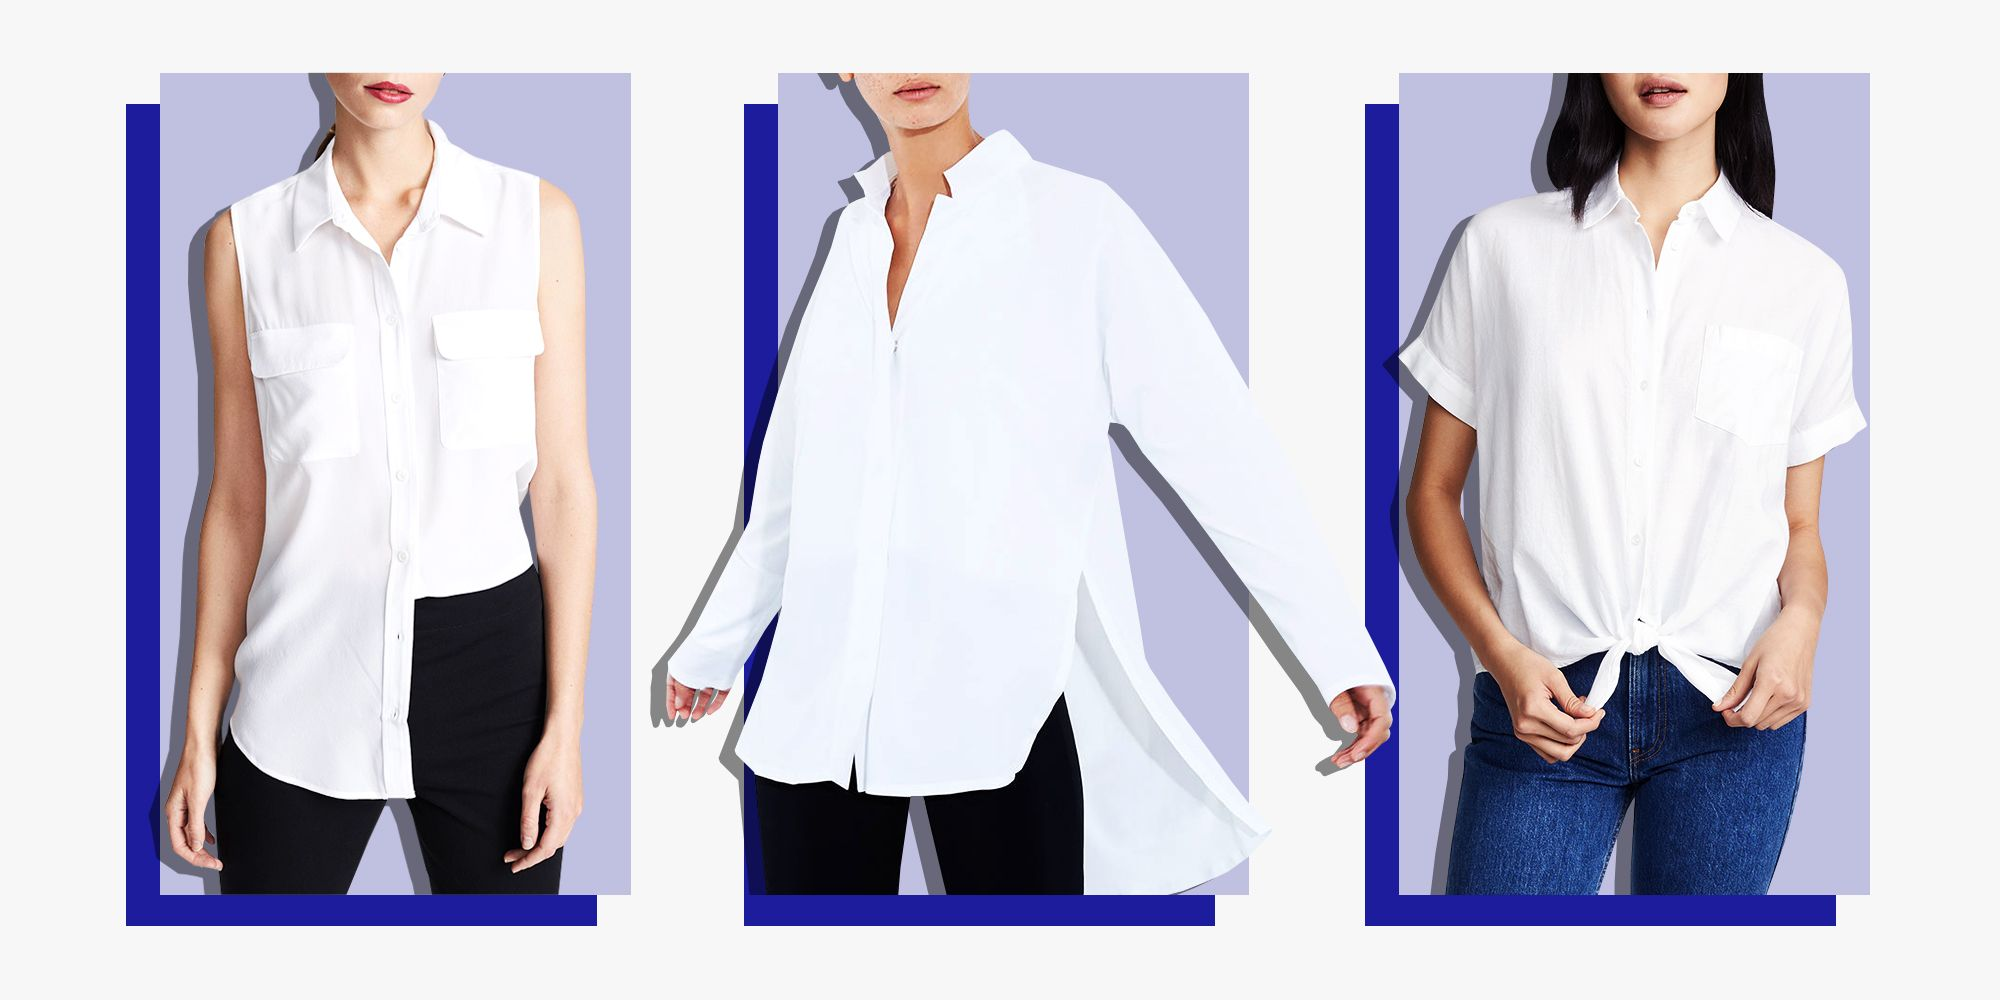 e96aad78289ce The Classic Women's White Button-Down Is More Than Just a Work Shirt